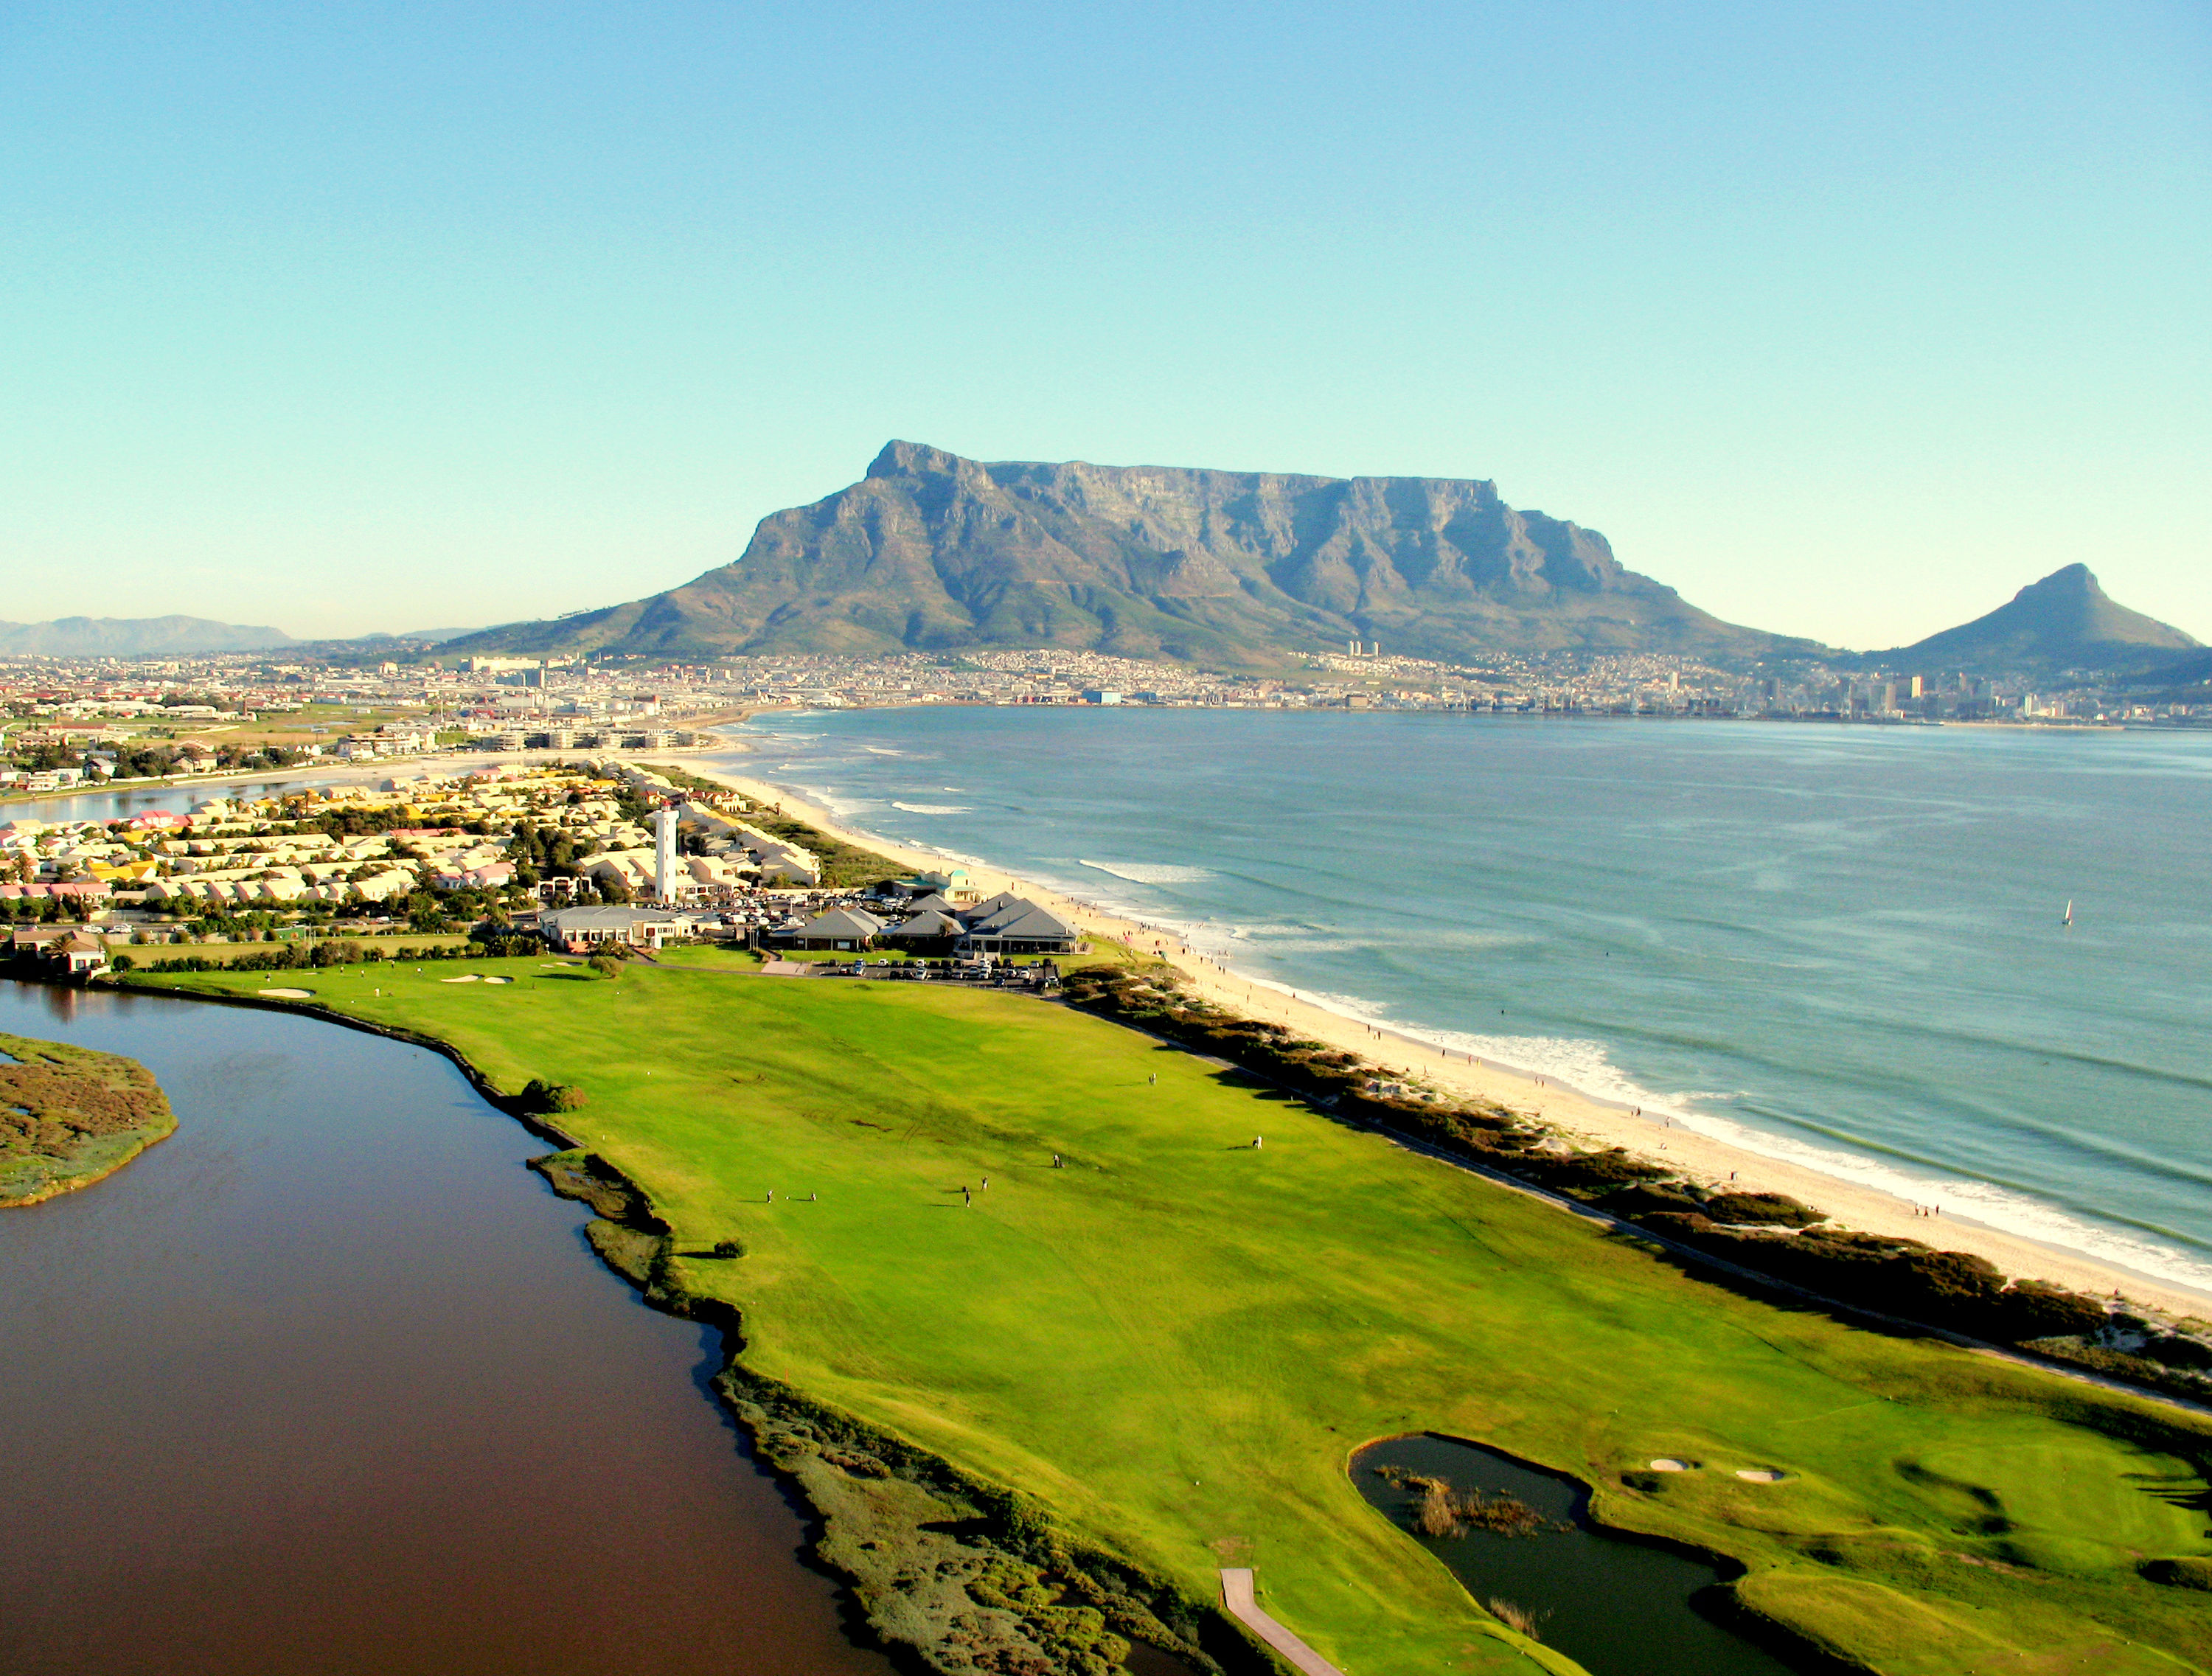 https://bubo.sk/uploads/galleries/15719/milnerton_golf_club_cover_picture.jpg